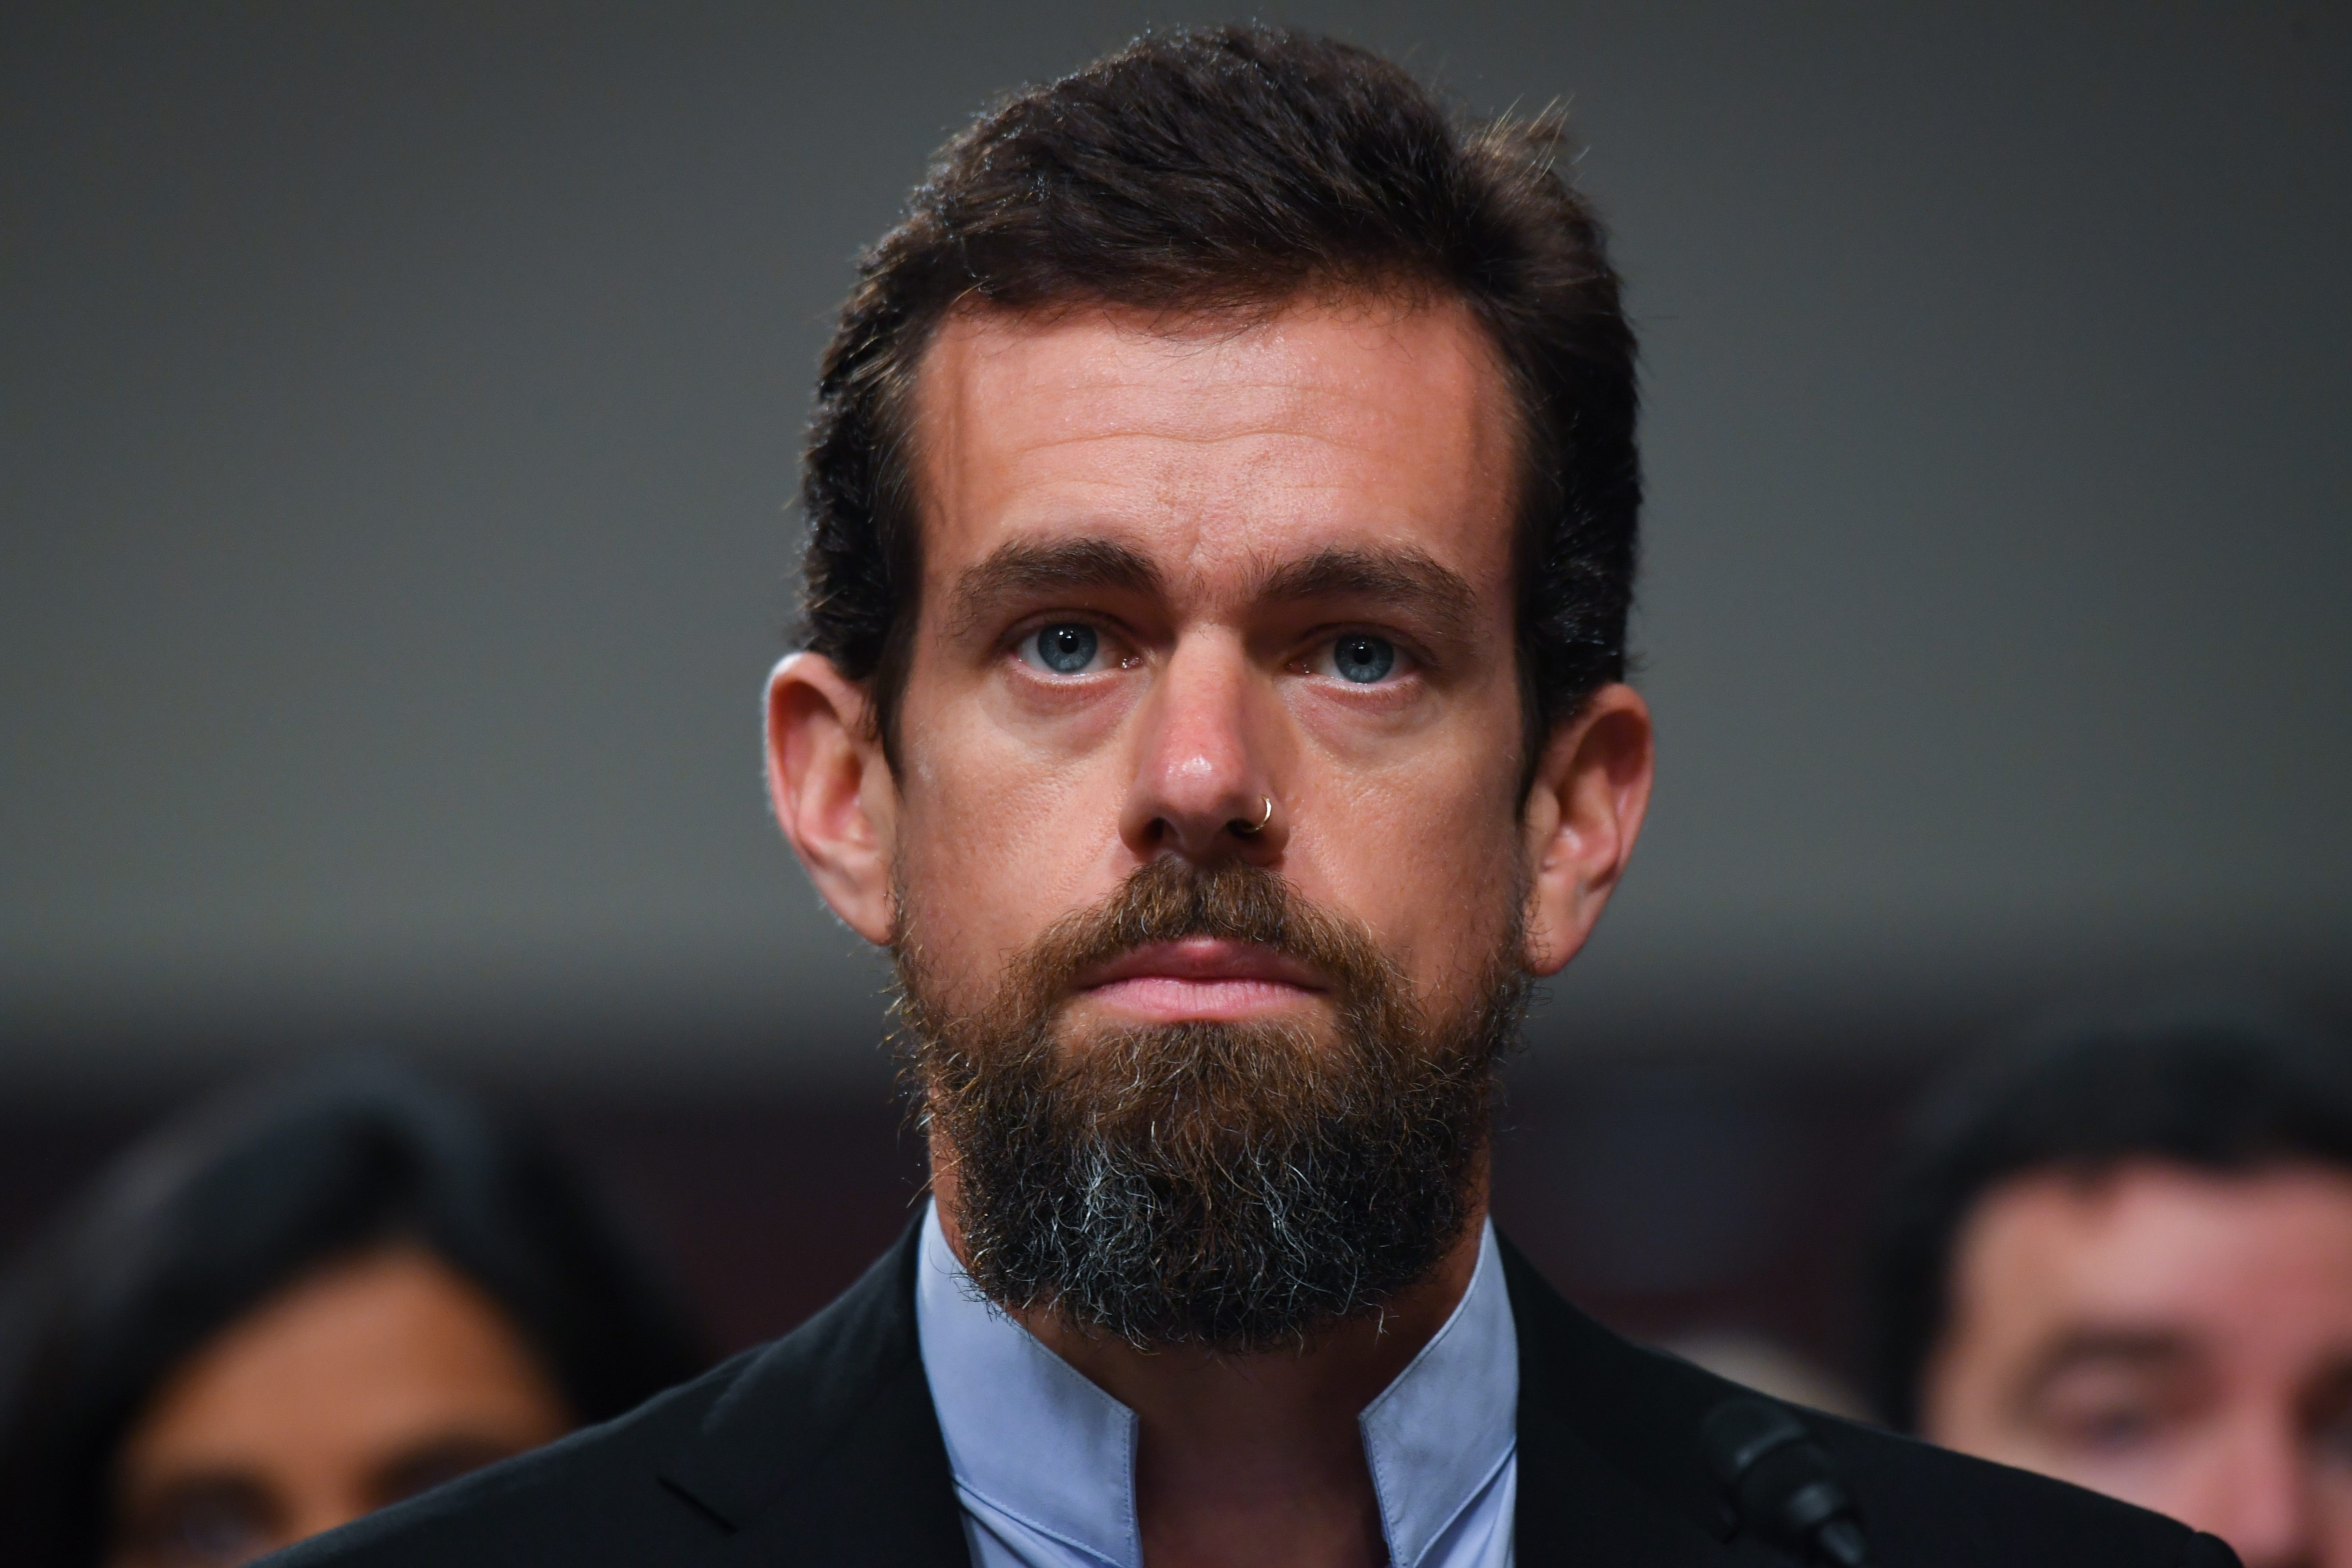 Elliott Management wants to oust Jack Dorsey as Twitter CEO, reports say